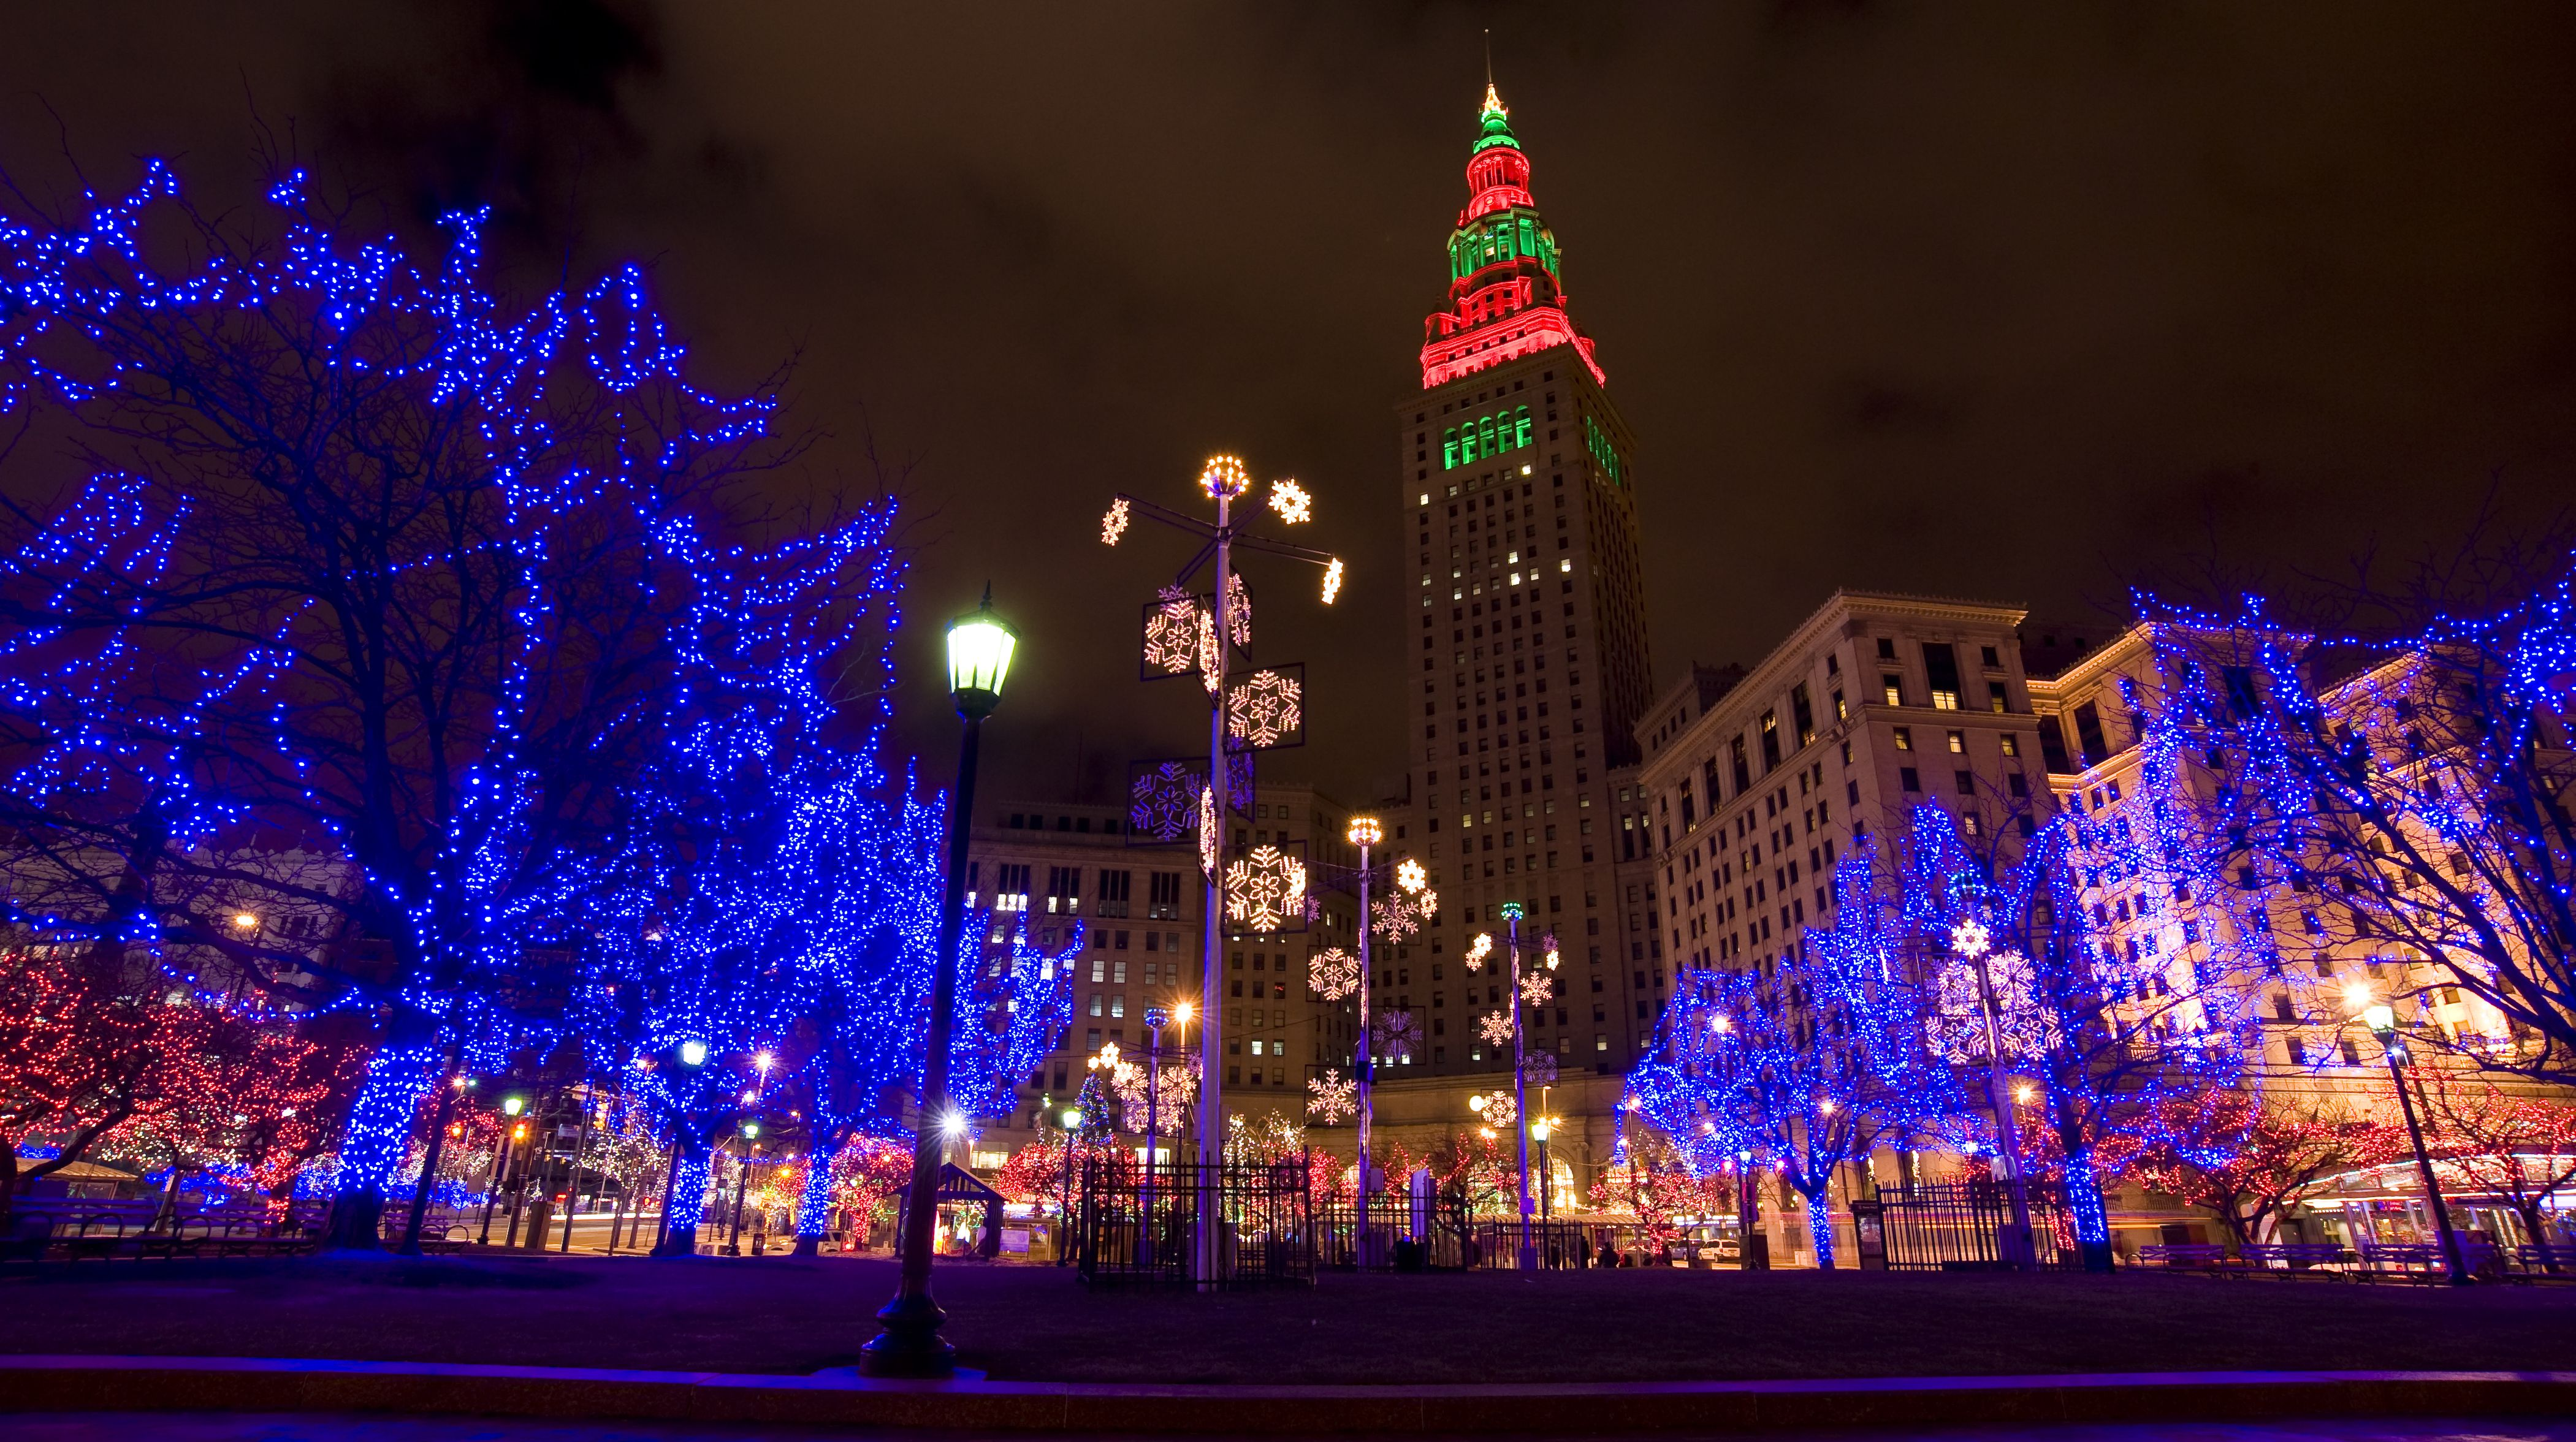 Tree Lighting London Ontario Cleveland Winter - Google Search | Atmosphere | Pinterest